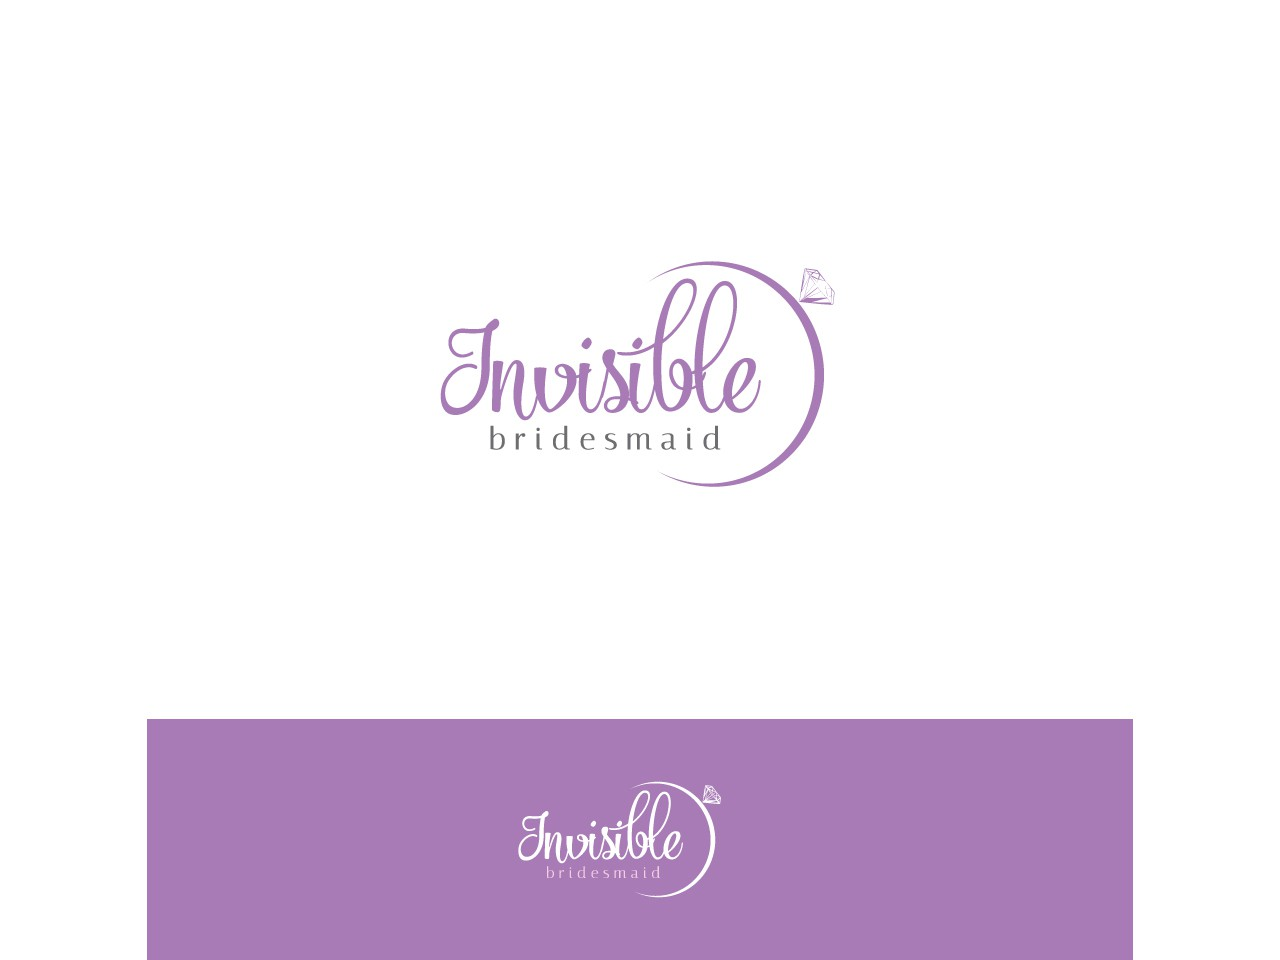 NEED LOGO - HELP ME DEISGN FOR MY WEDDING CONSULTING COMPANY